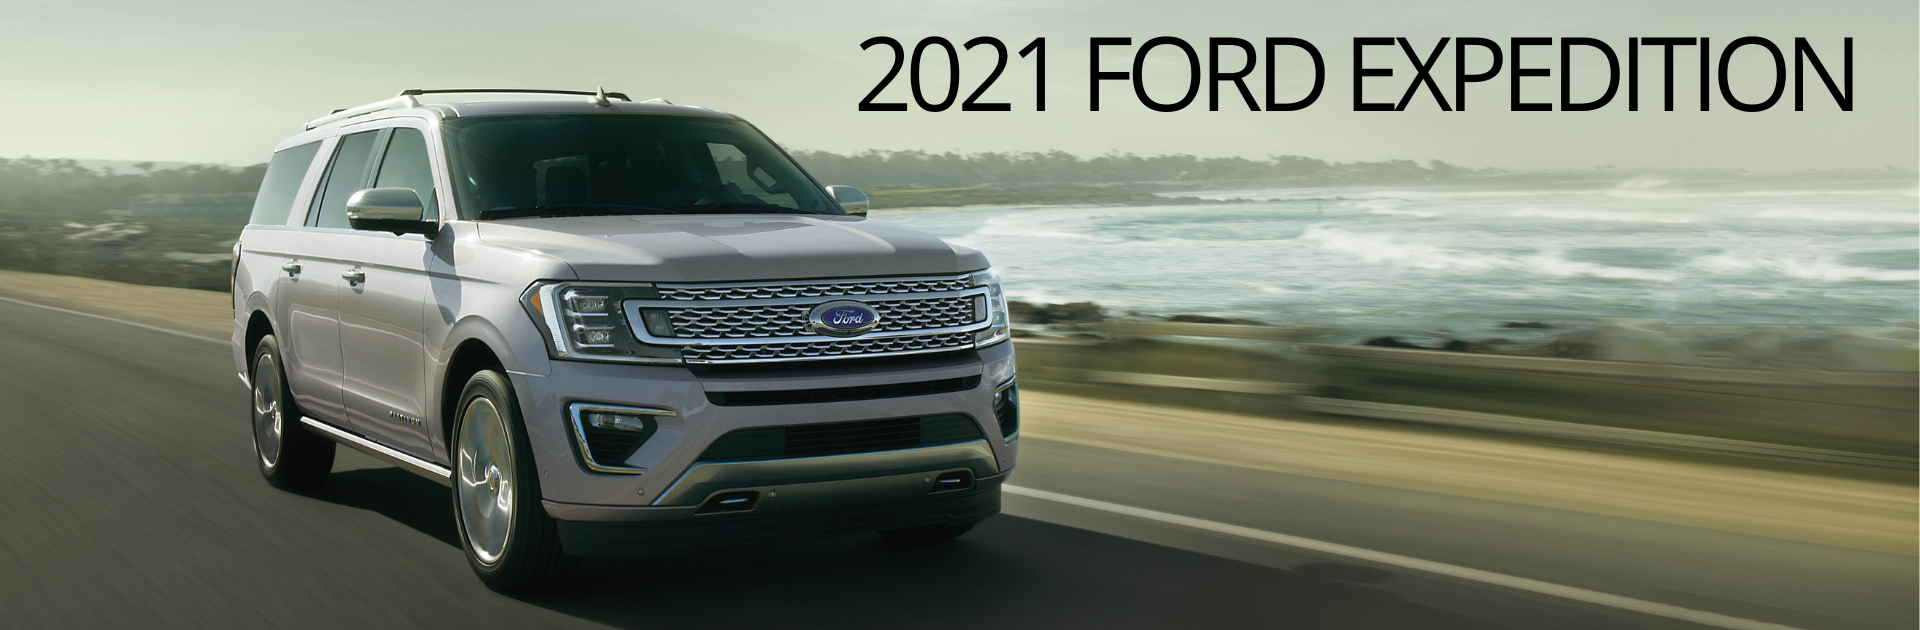 2021 Ford Expedition At Bozeman Ford Mt